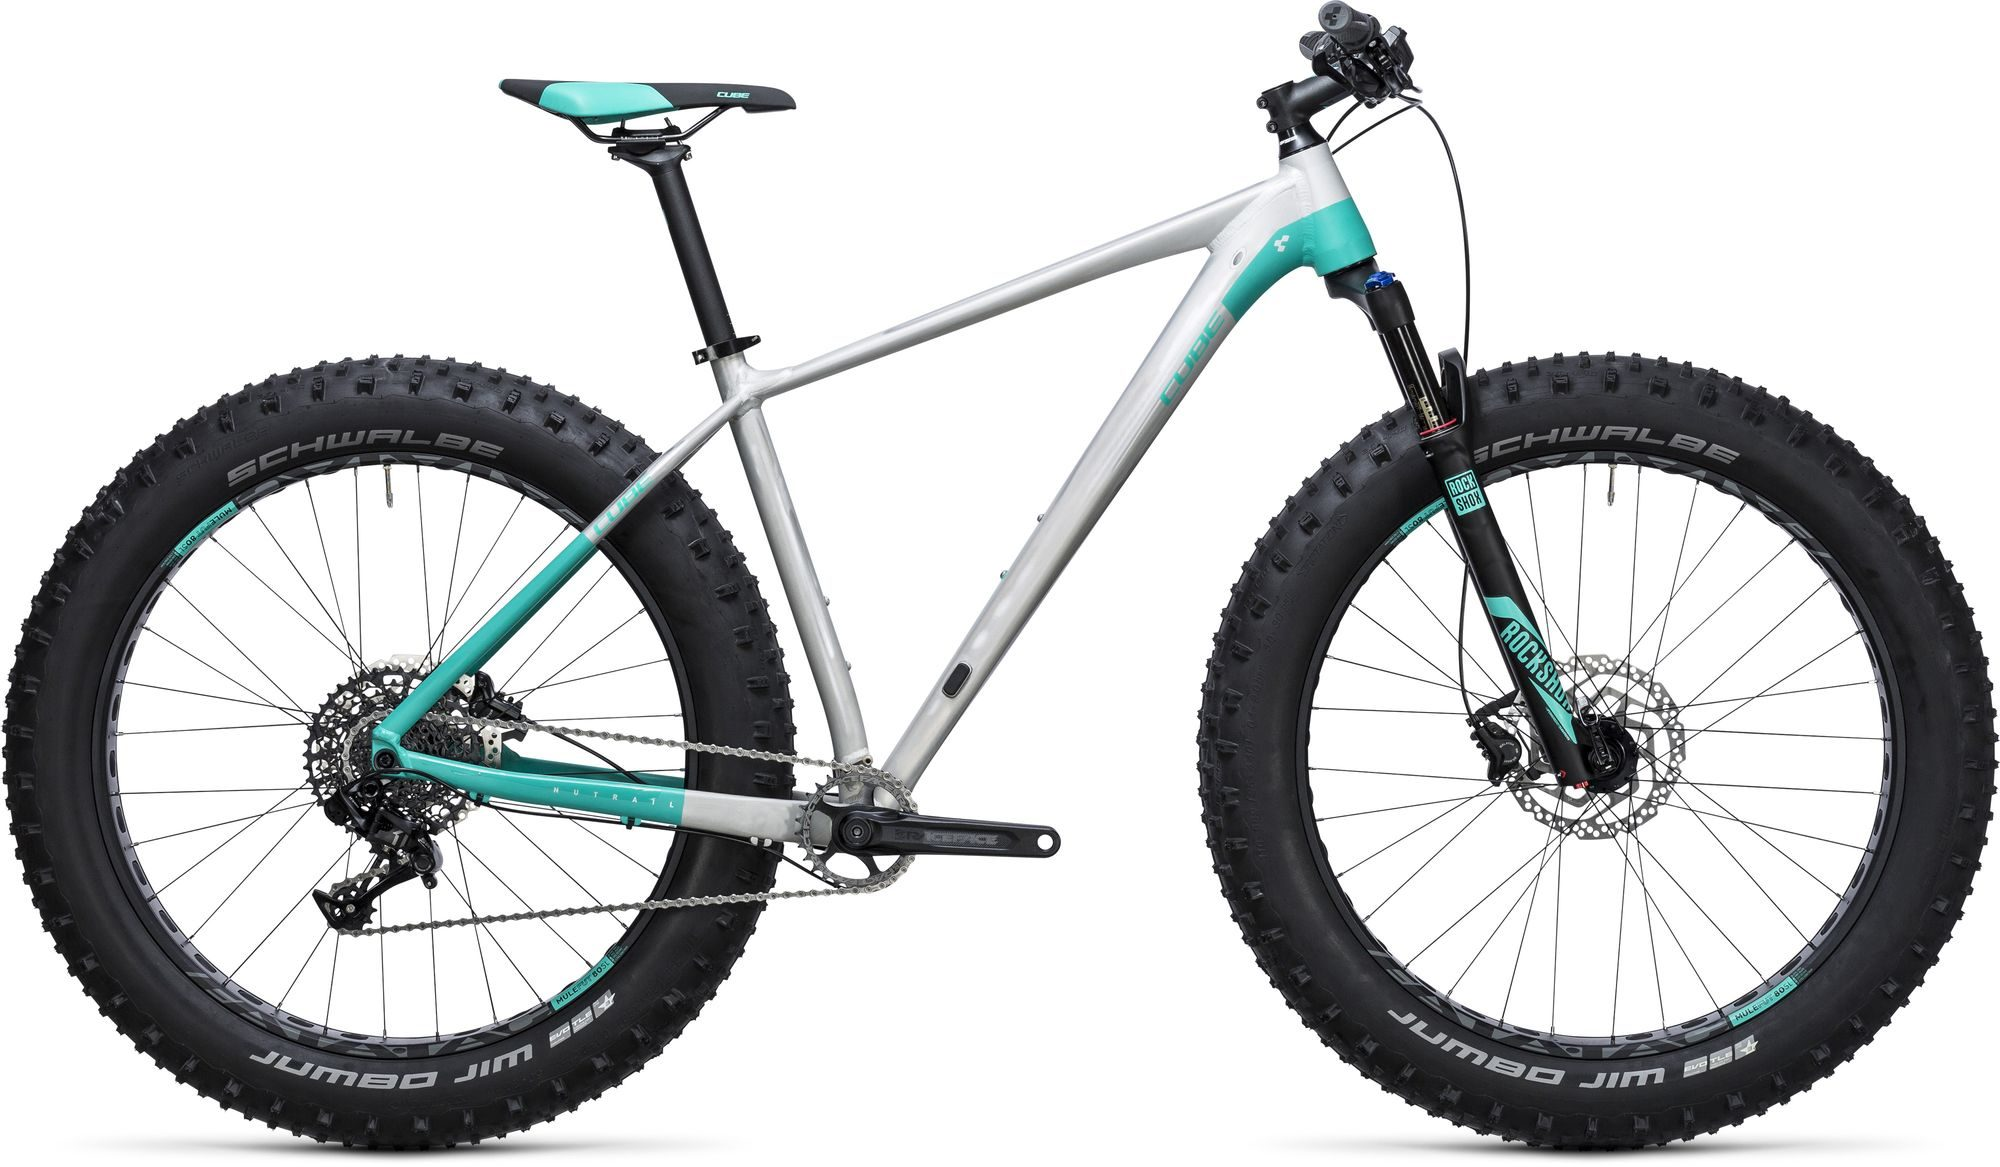 CUBE NUTRAIL PRO 2017